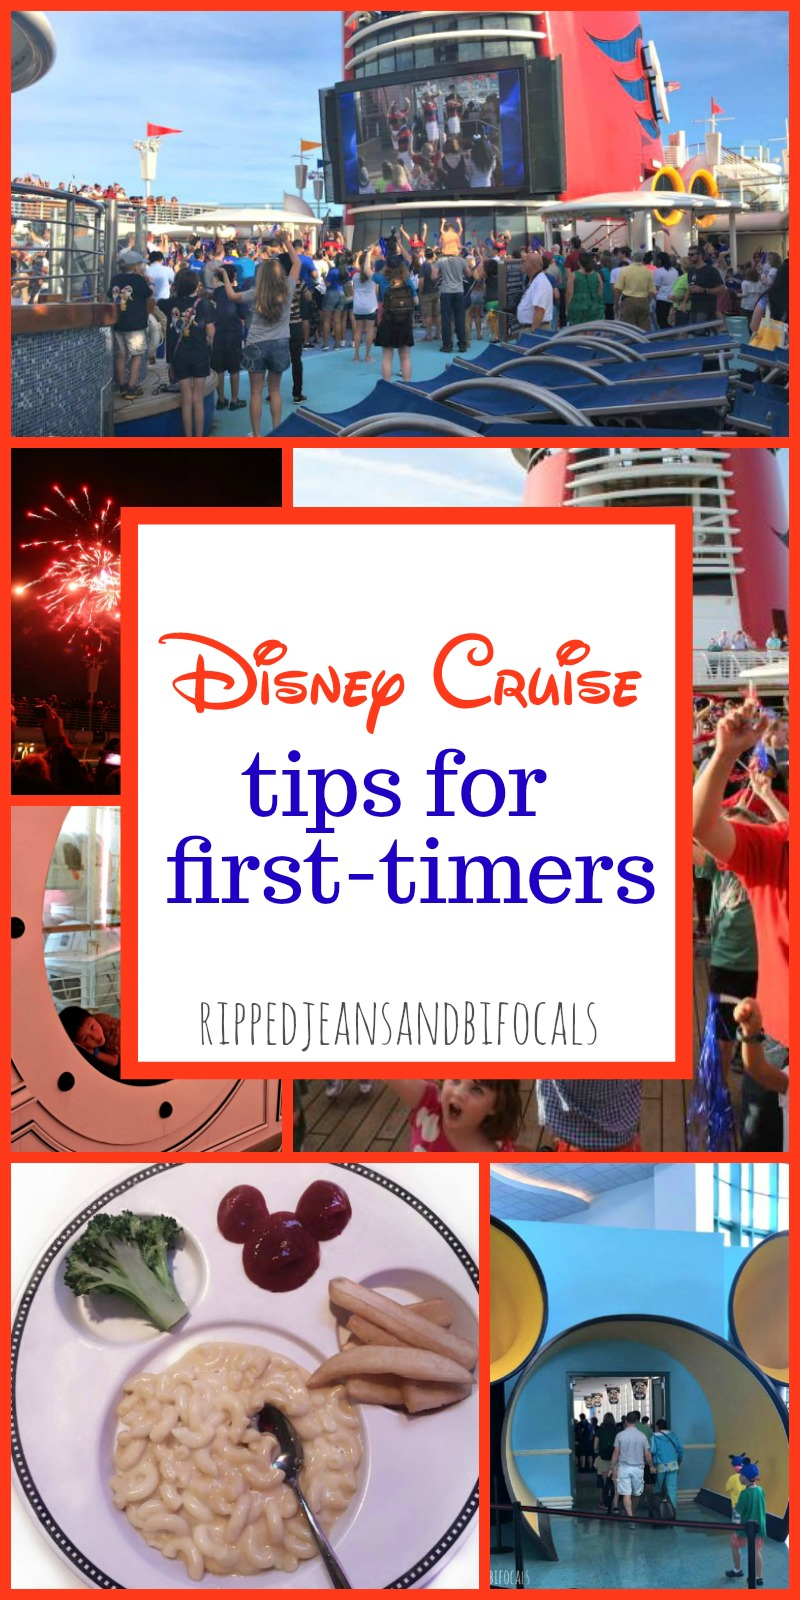 Disney Cruise Tips for First Timers...if you have questions, this is the place to start!|Ripped Jeans and Bifocals